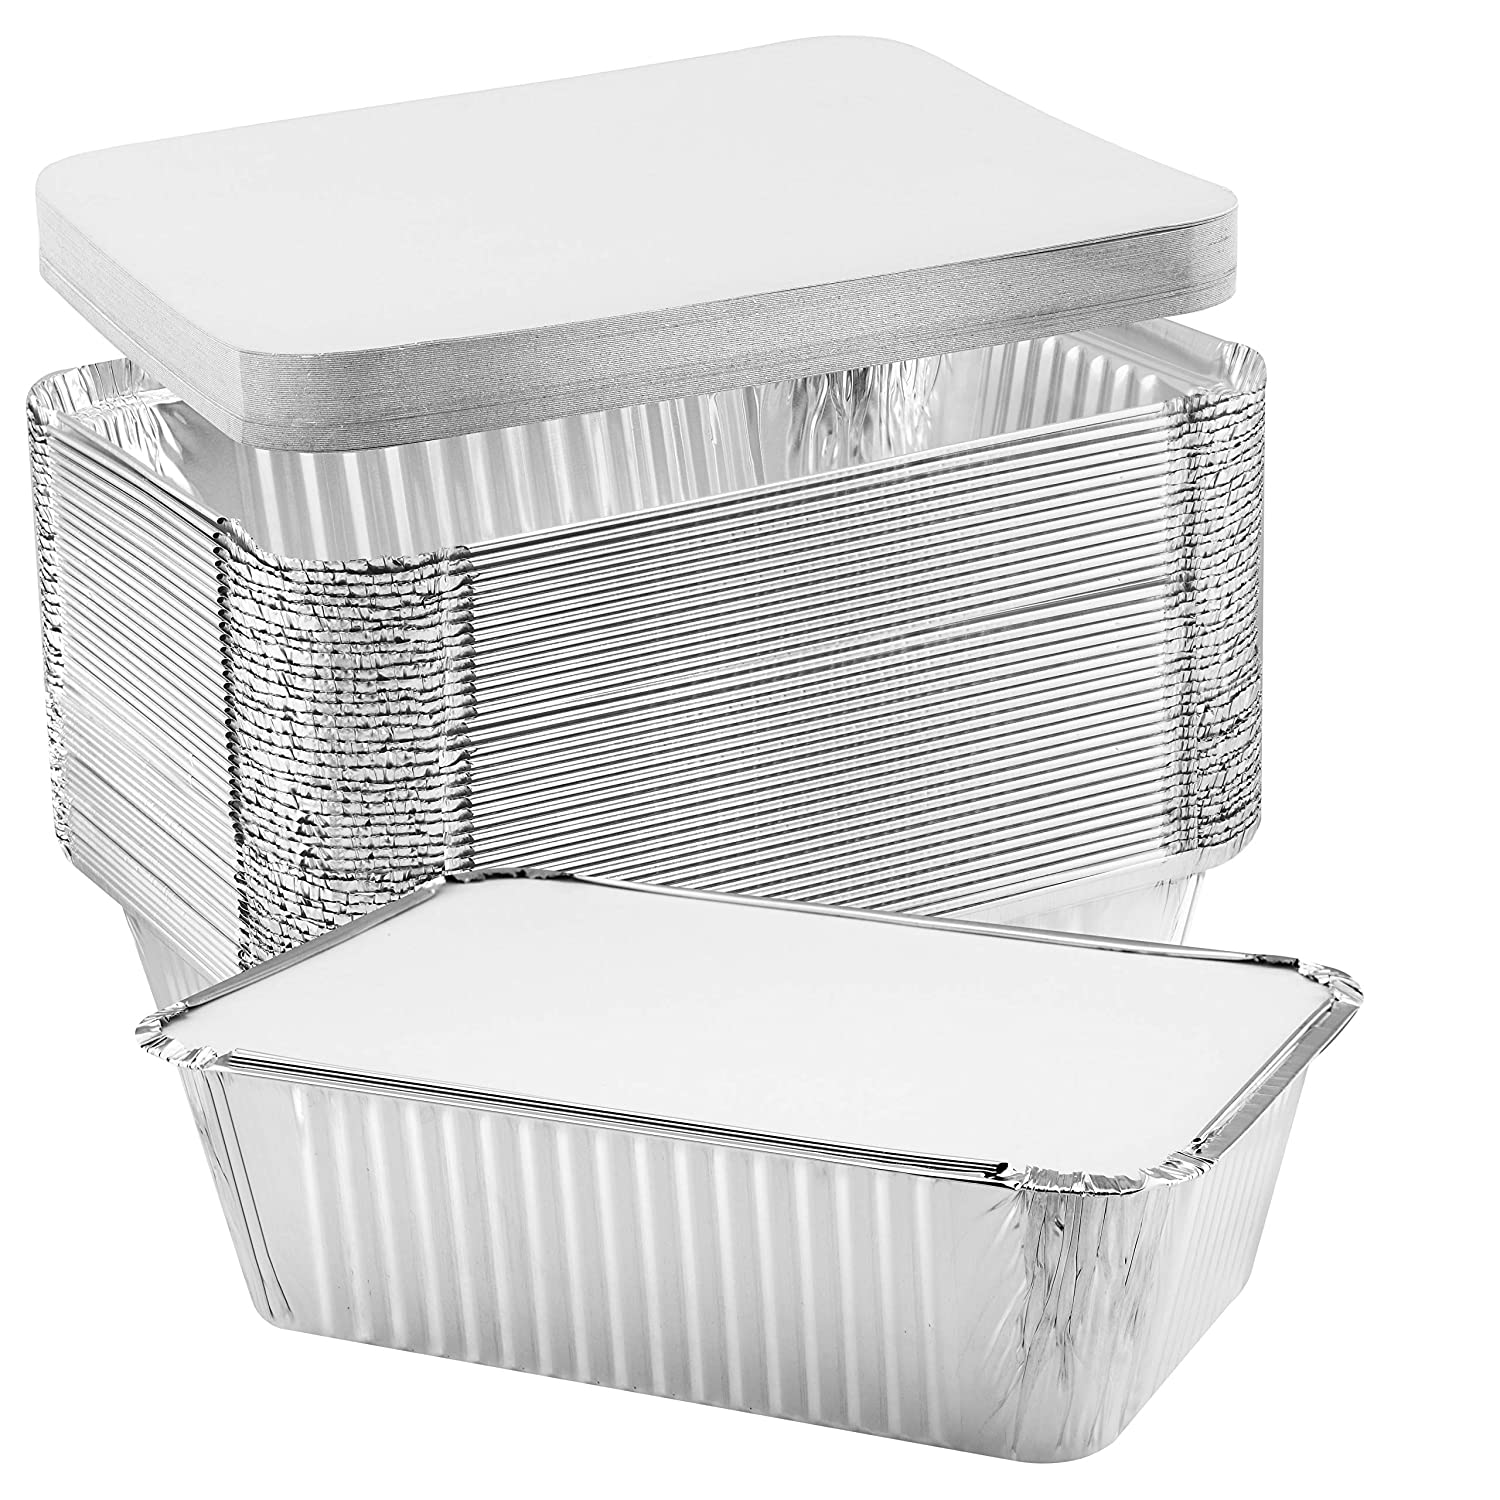 NYHI 50-Pack Heavy Duty Disposable Aluminum Oblong Foil Pans with Lid Covers Recyclable Tin Food Storage Tray Extra-Sturdy Containers for Cooking, Baking, Meal Prep, Takeout - 5 lb